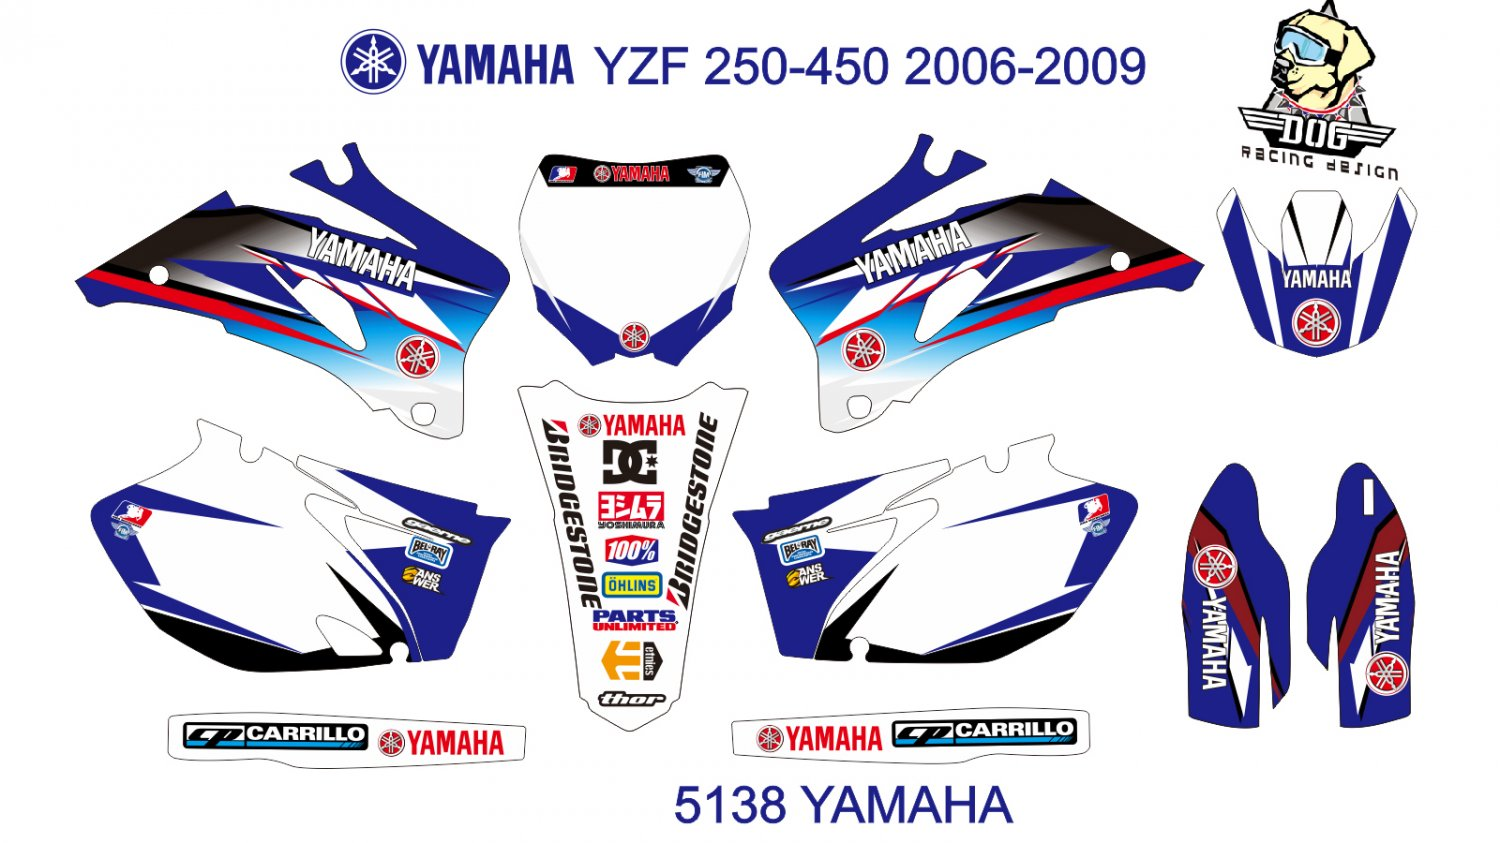 YAMAHA YZF 250-450 2006-2009 GRAPHIC DECAL KIT CODE.5138